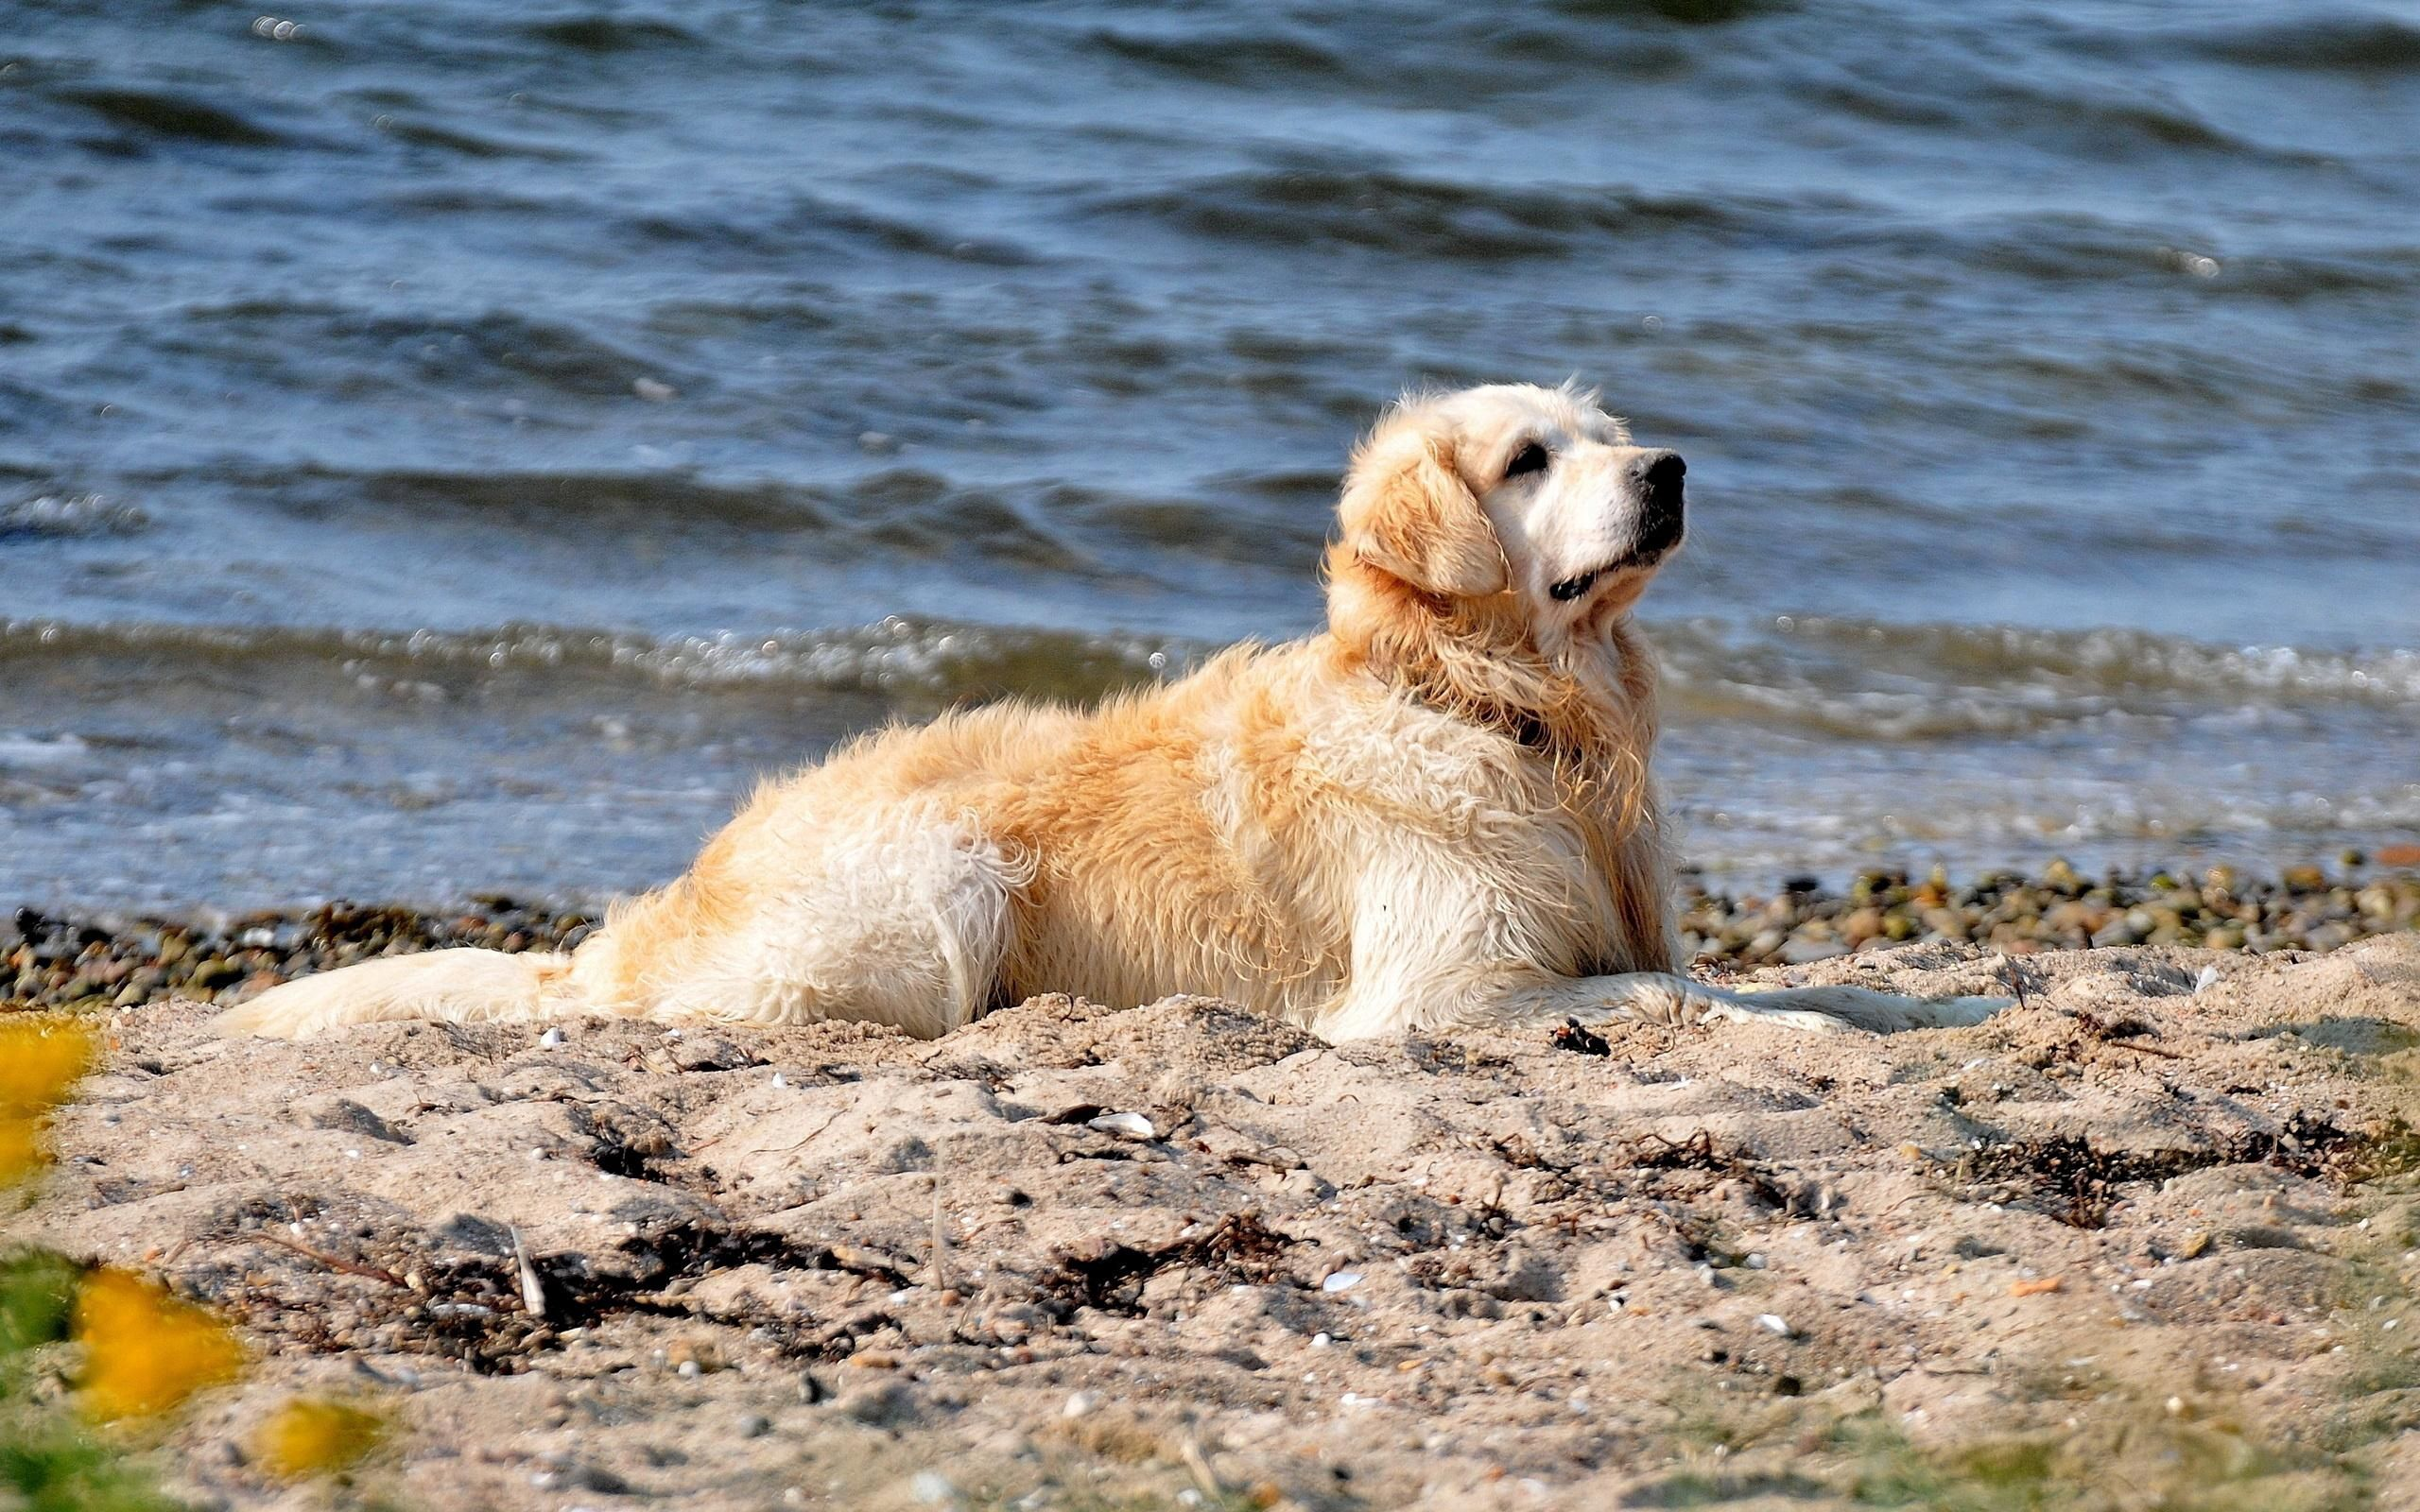 123350 download wallpaper Animals, Dog, Labrador, Sit, Shore, Bank, Sand, Water screensavers and pictures for free